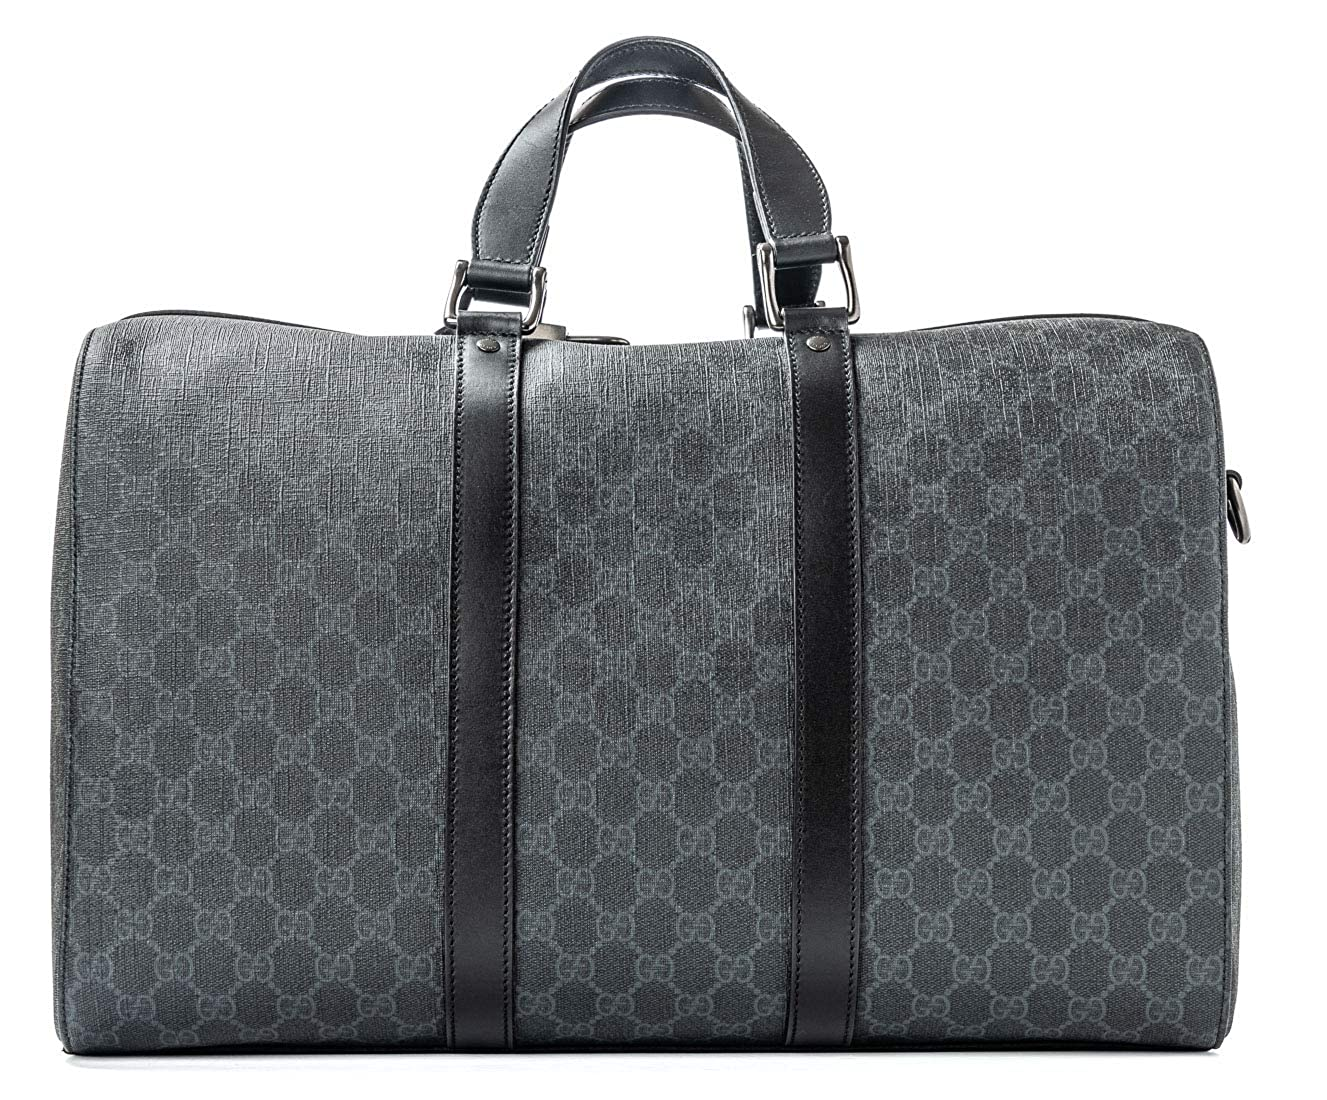 70b9cfe5c Amazon.com: Gucci Duffle Luggage GG Supreme Carry On Bag Black Signature GG  Leather New: Shoes